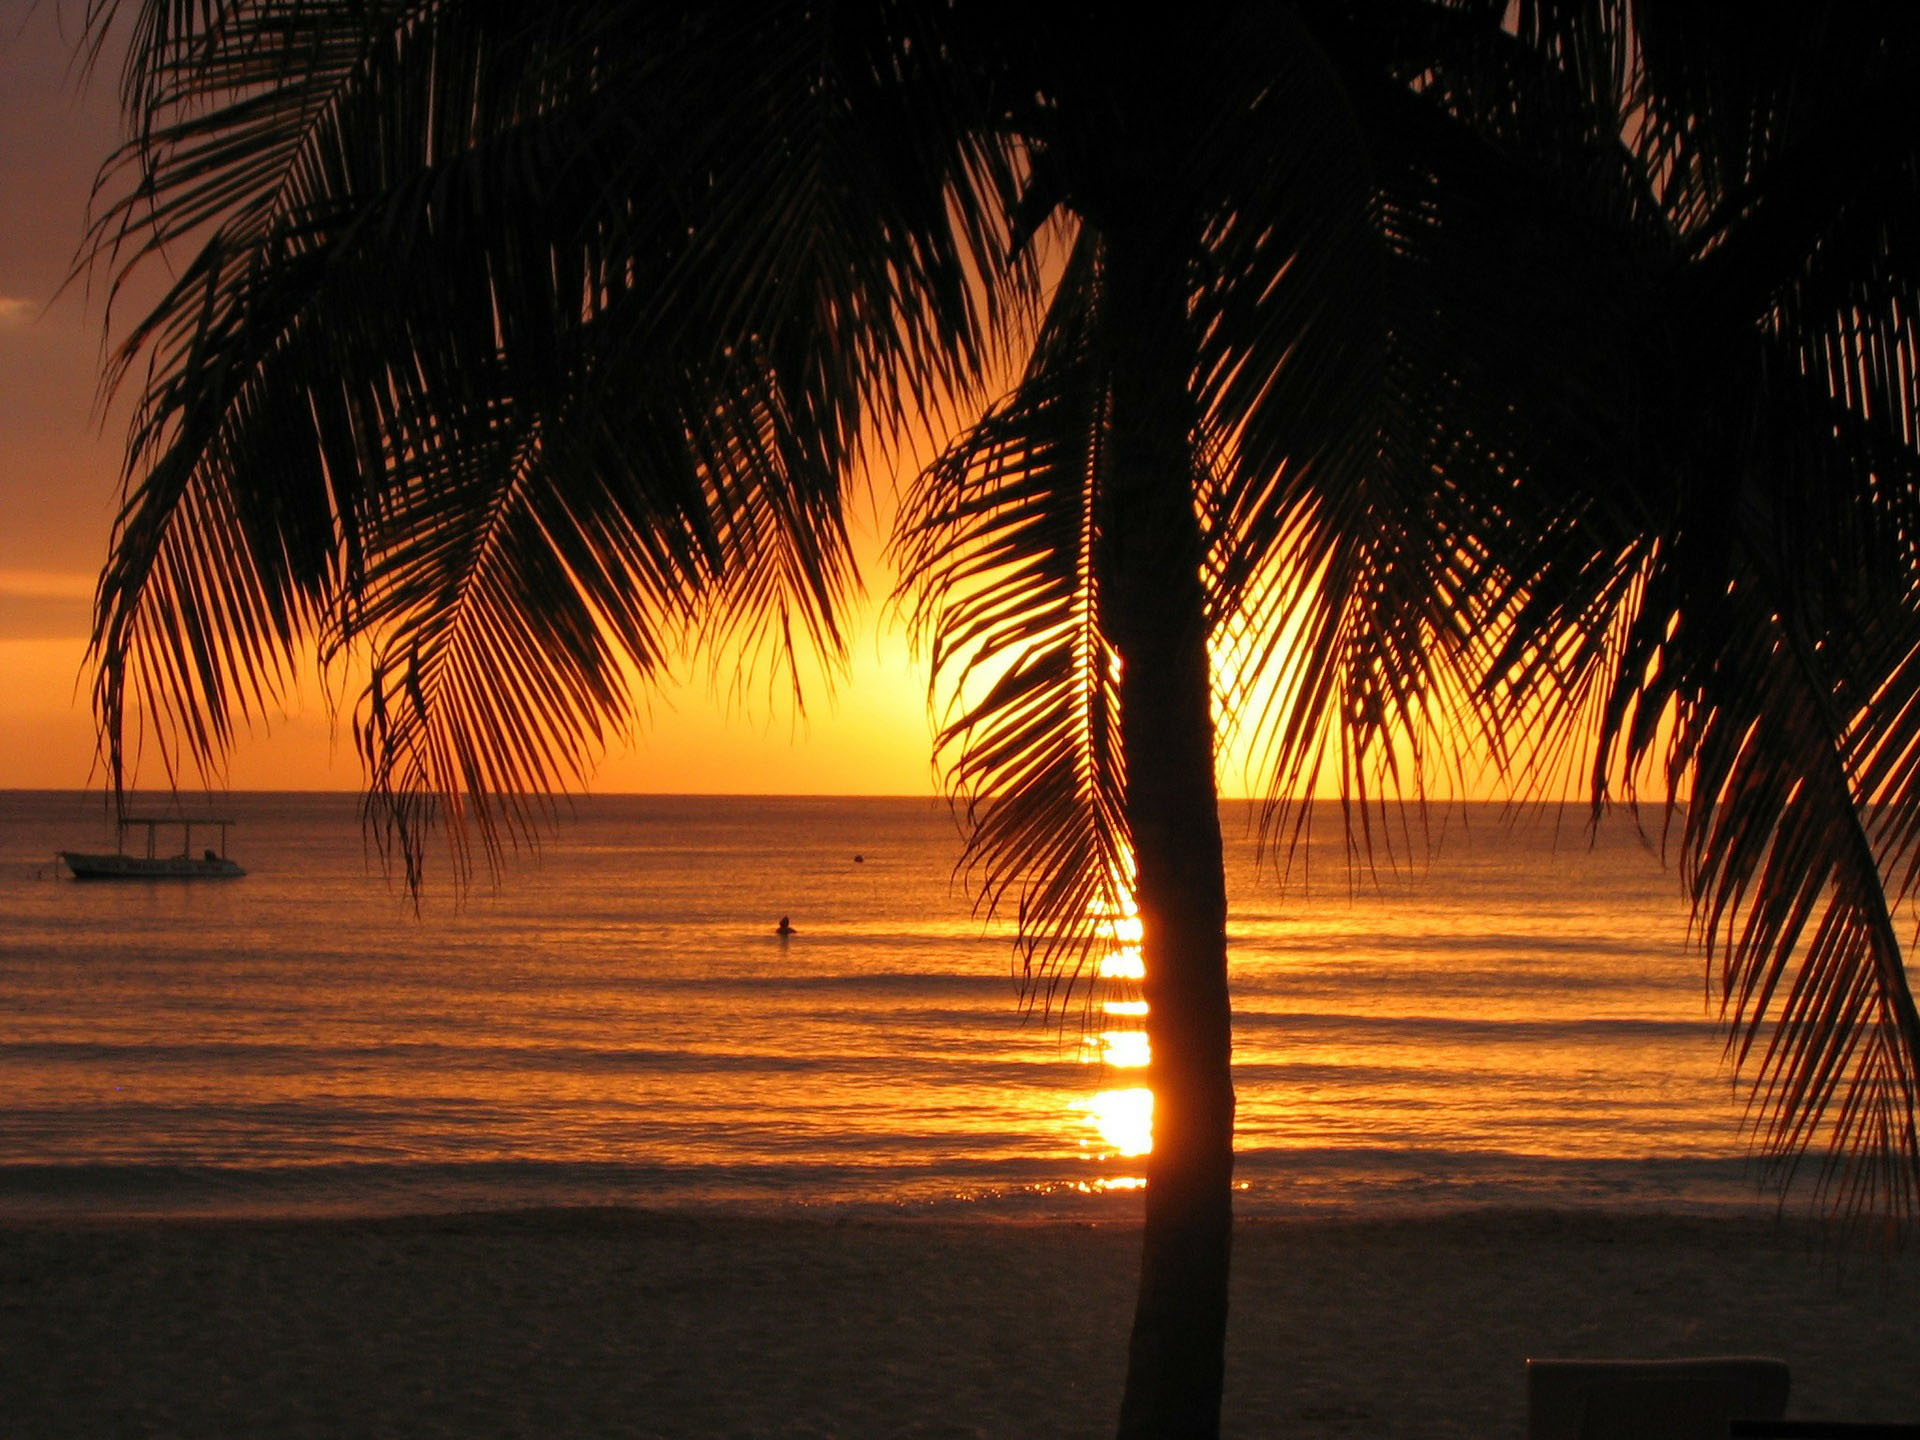 Sunset on a beach. A palm tree in the foreground with a small boat & a person swimming in the water in the background.